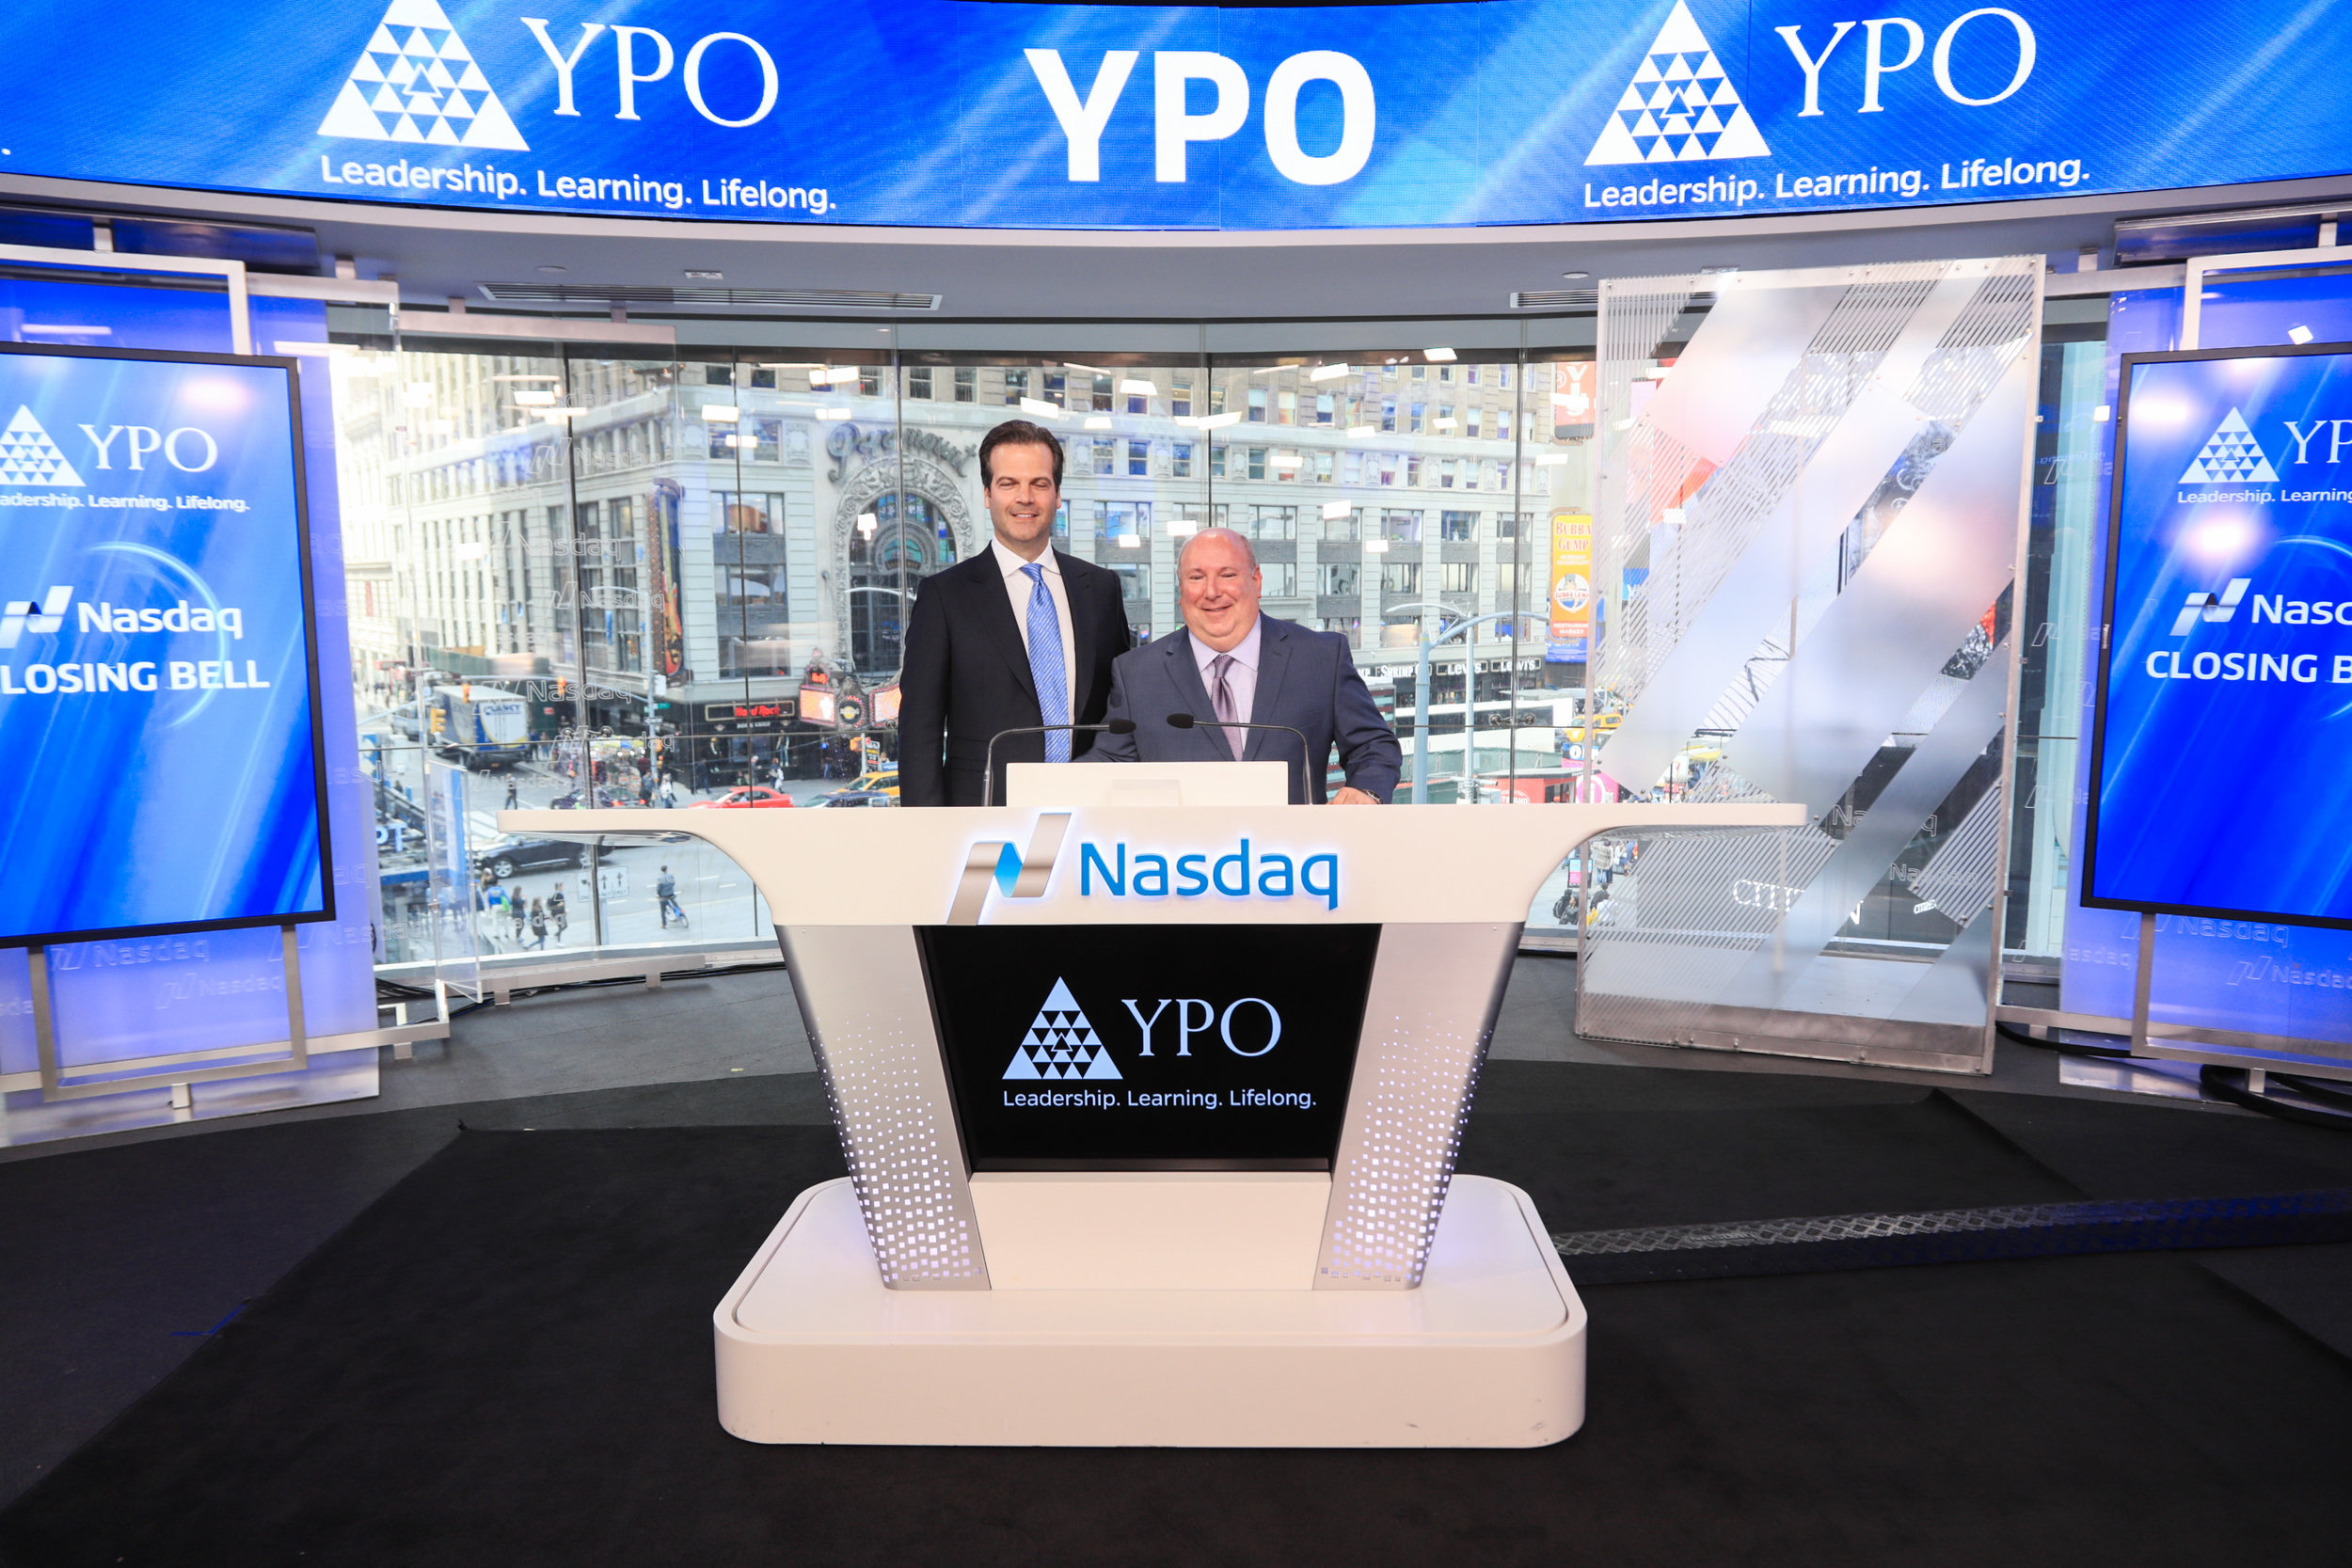 At Nasdaq for YPO Innovation Week 2017, New York